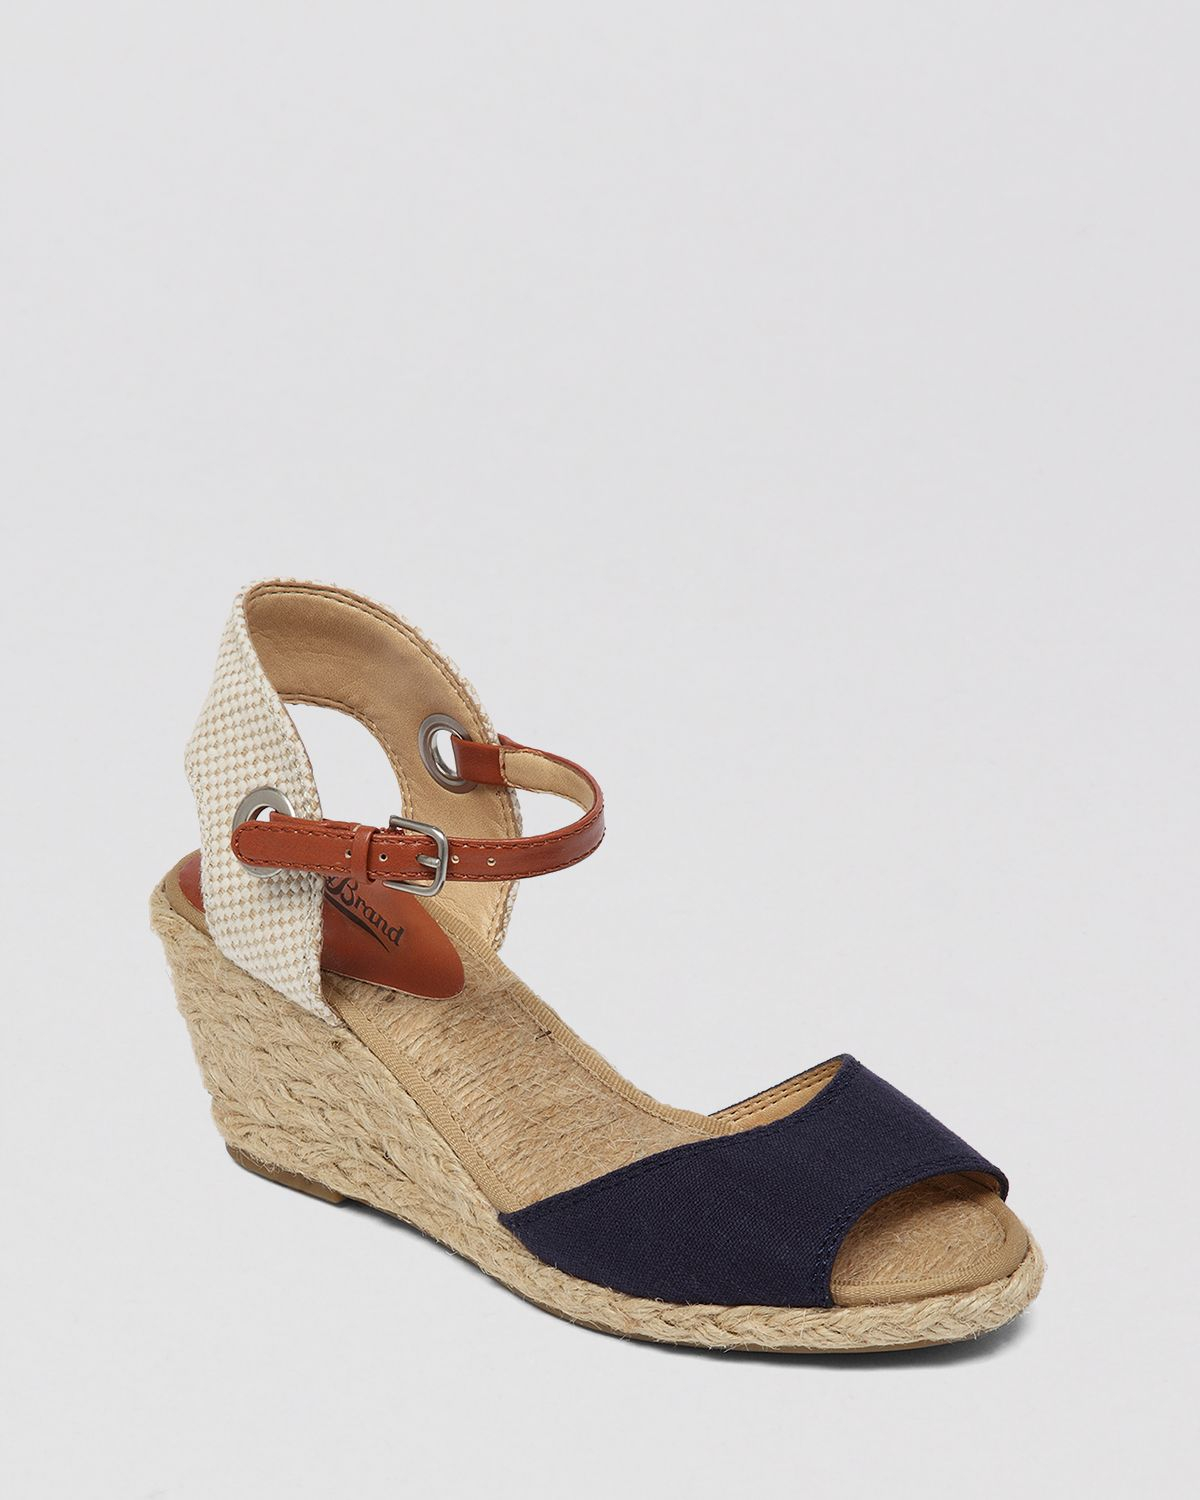 Lucky Brand Espadrille Wedge Sandals Kyndra In Black Lyst